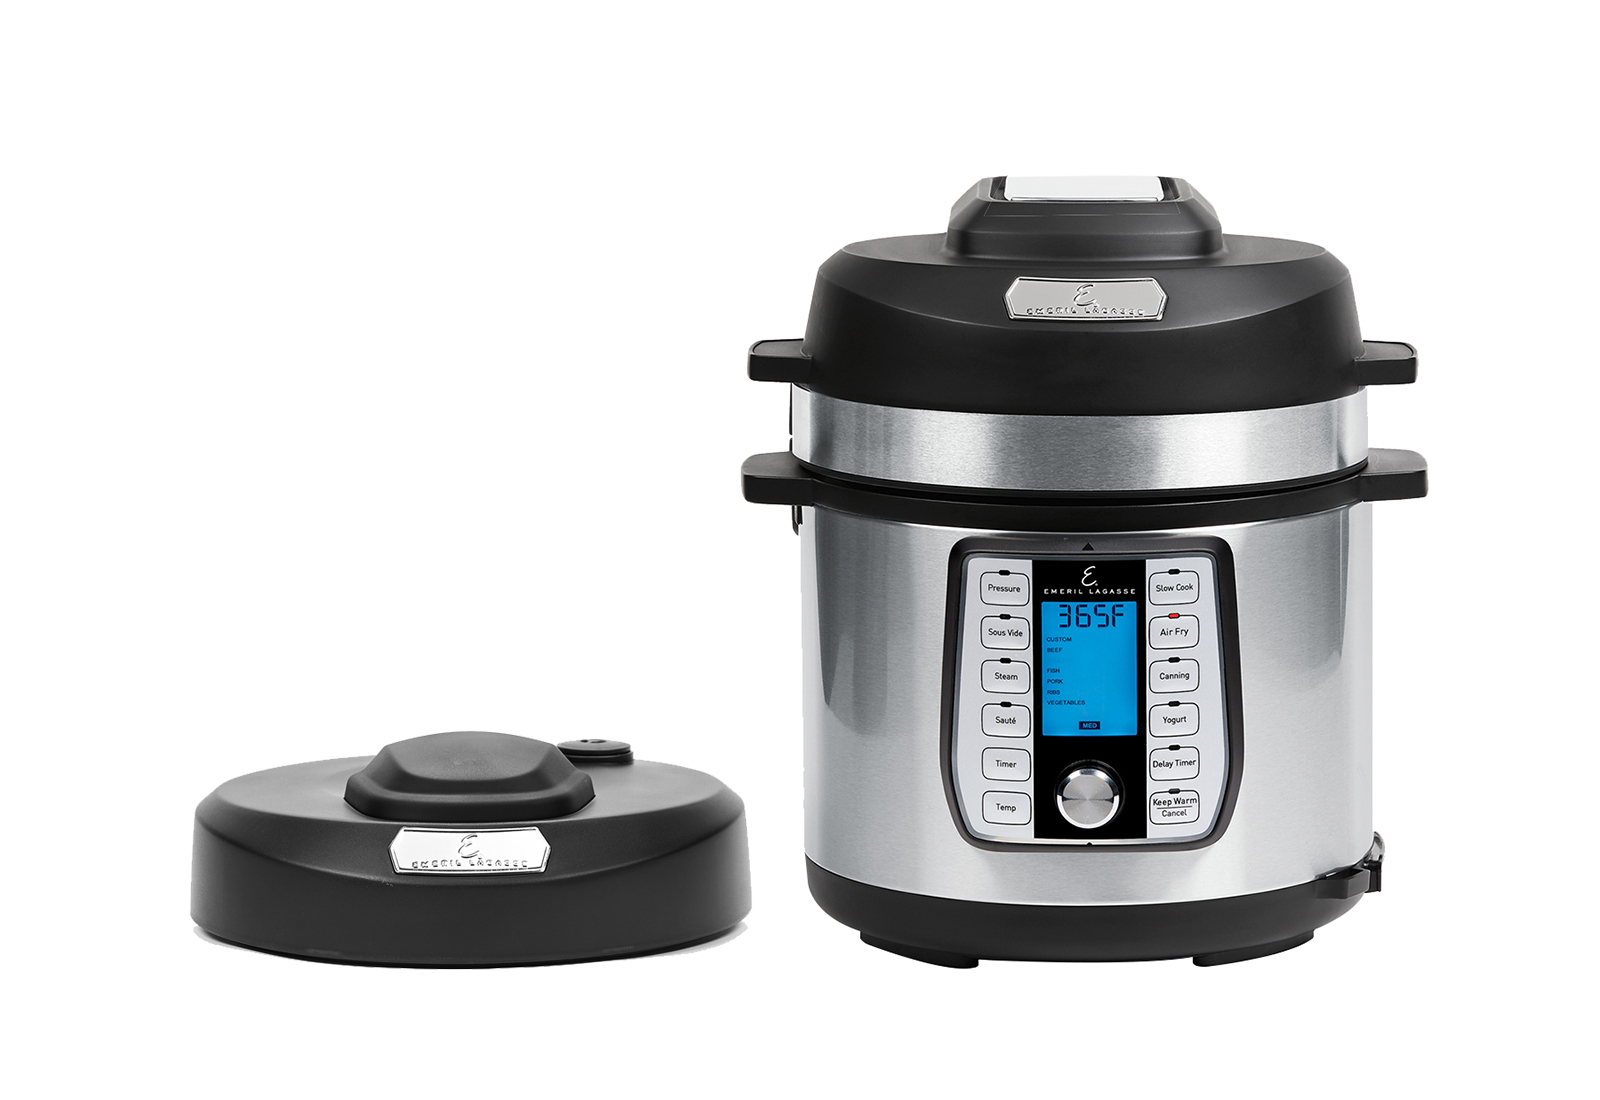 Emeril Lagasse Pressure Airfryer Product Image